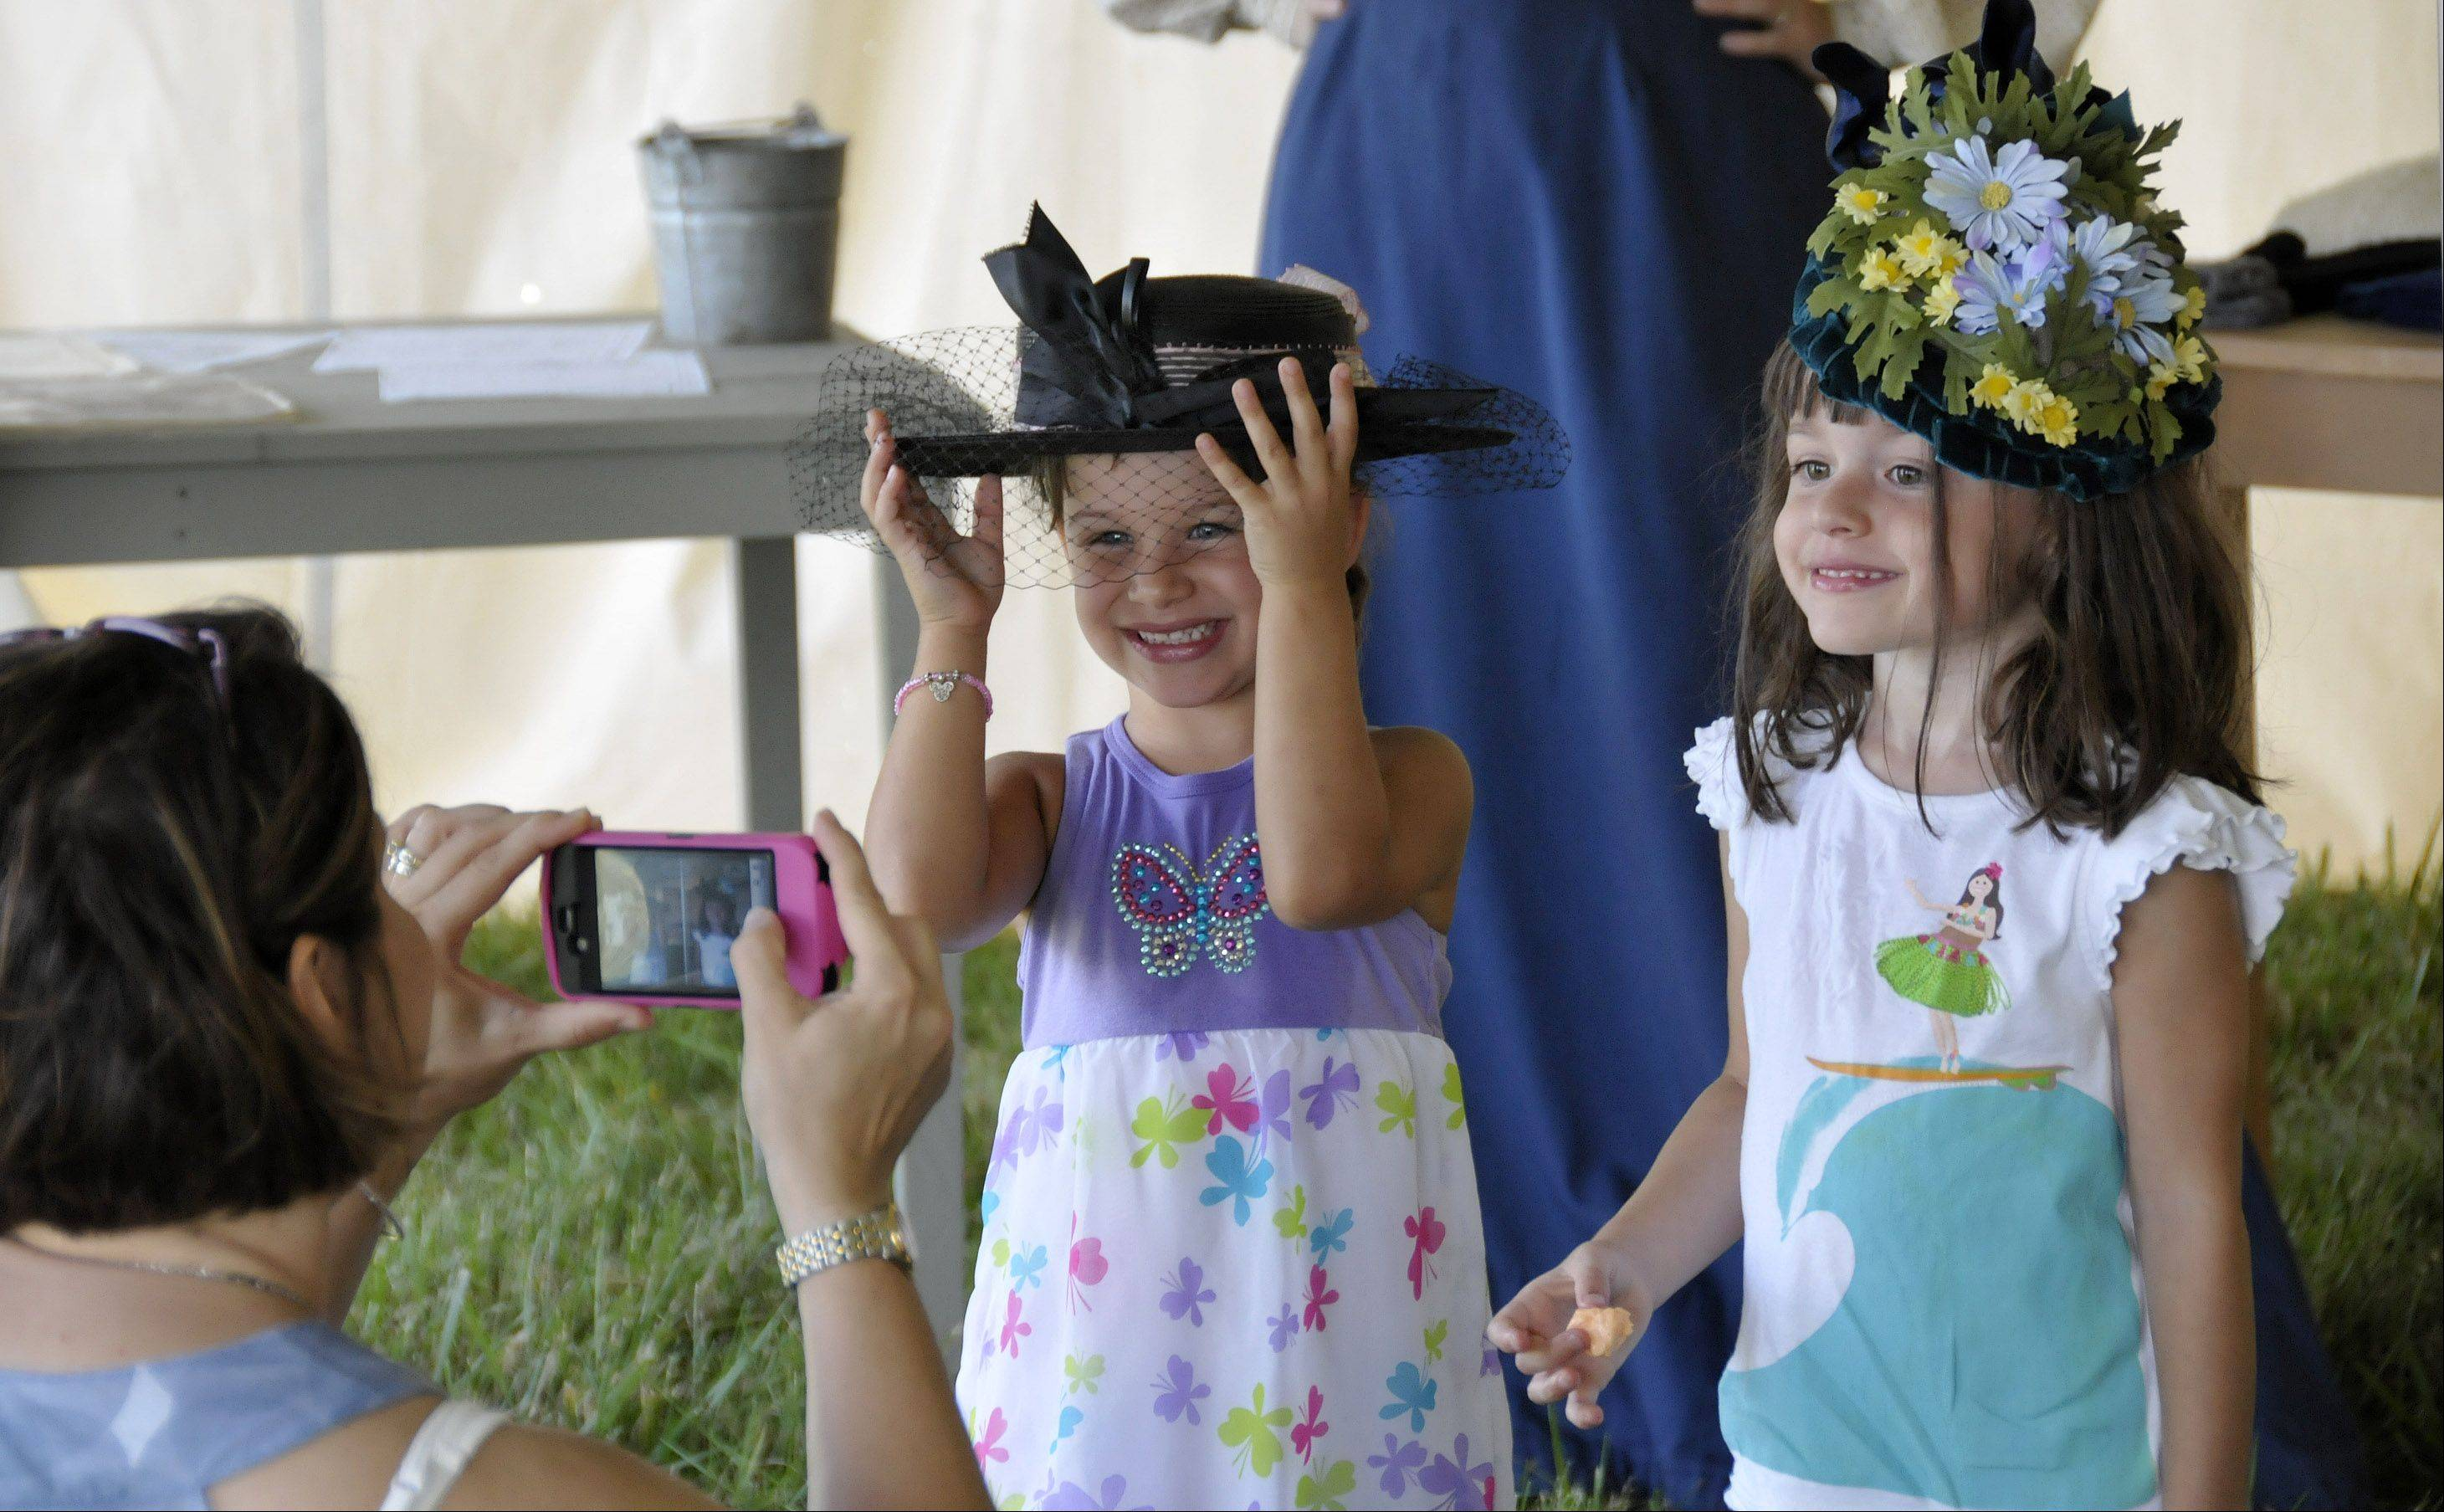 Eniko Camberis, center, and her sister Makena, right, get to try on old-fashioned hats while their mother Susan Camberis, left, takes their picture. The DuPage Forest Preserve district is holding an old-fashioned country fair Sunday at Kline Creek Farm in West Chicago, to give people the experience of what an 1890s fair would have been like.